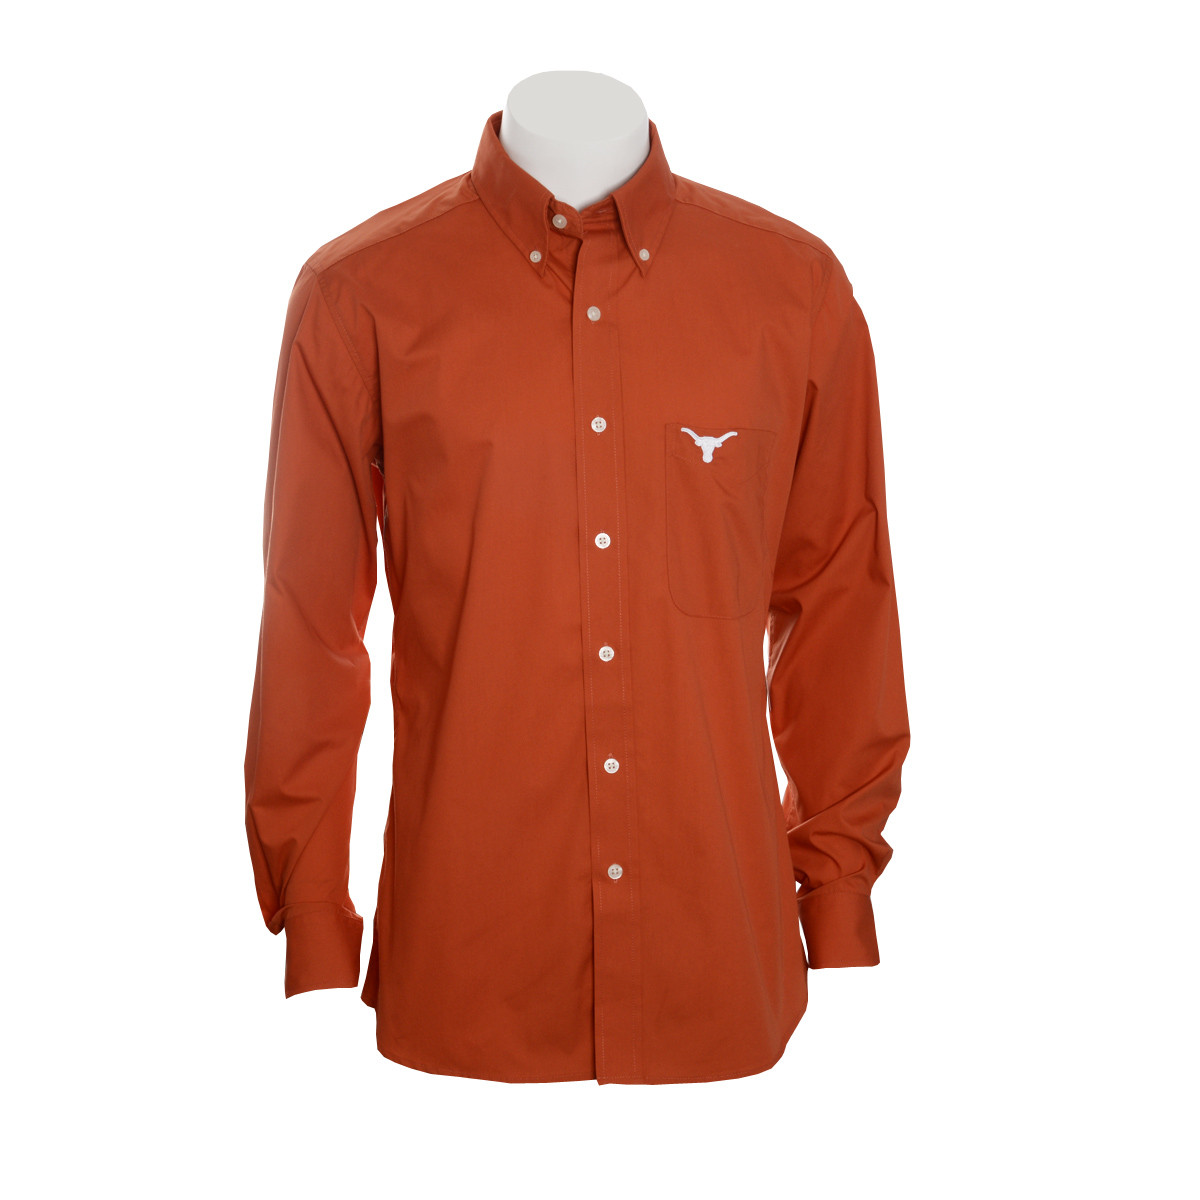 9396cc7f6 Texas Longhorn Mens  Dynasty Shirt (160110025). Price   55.00. Image 1